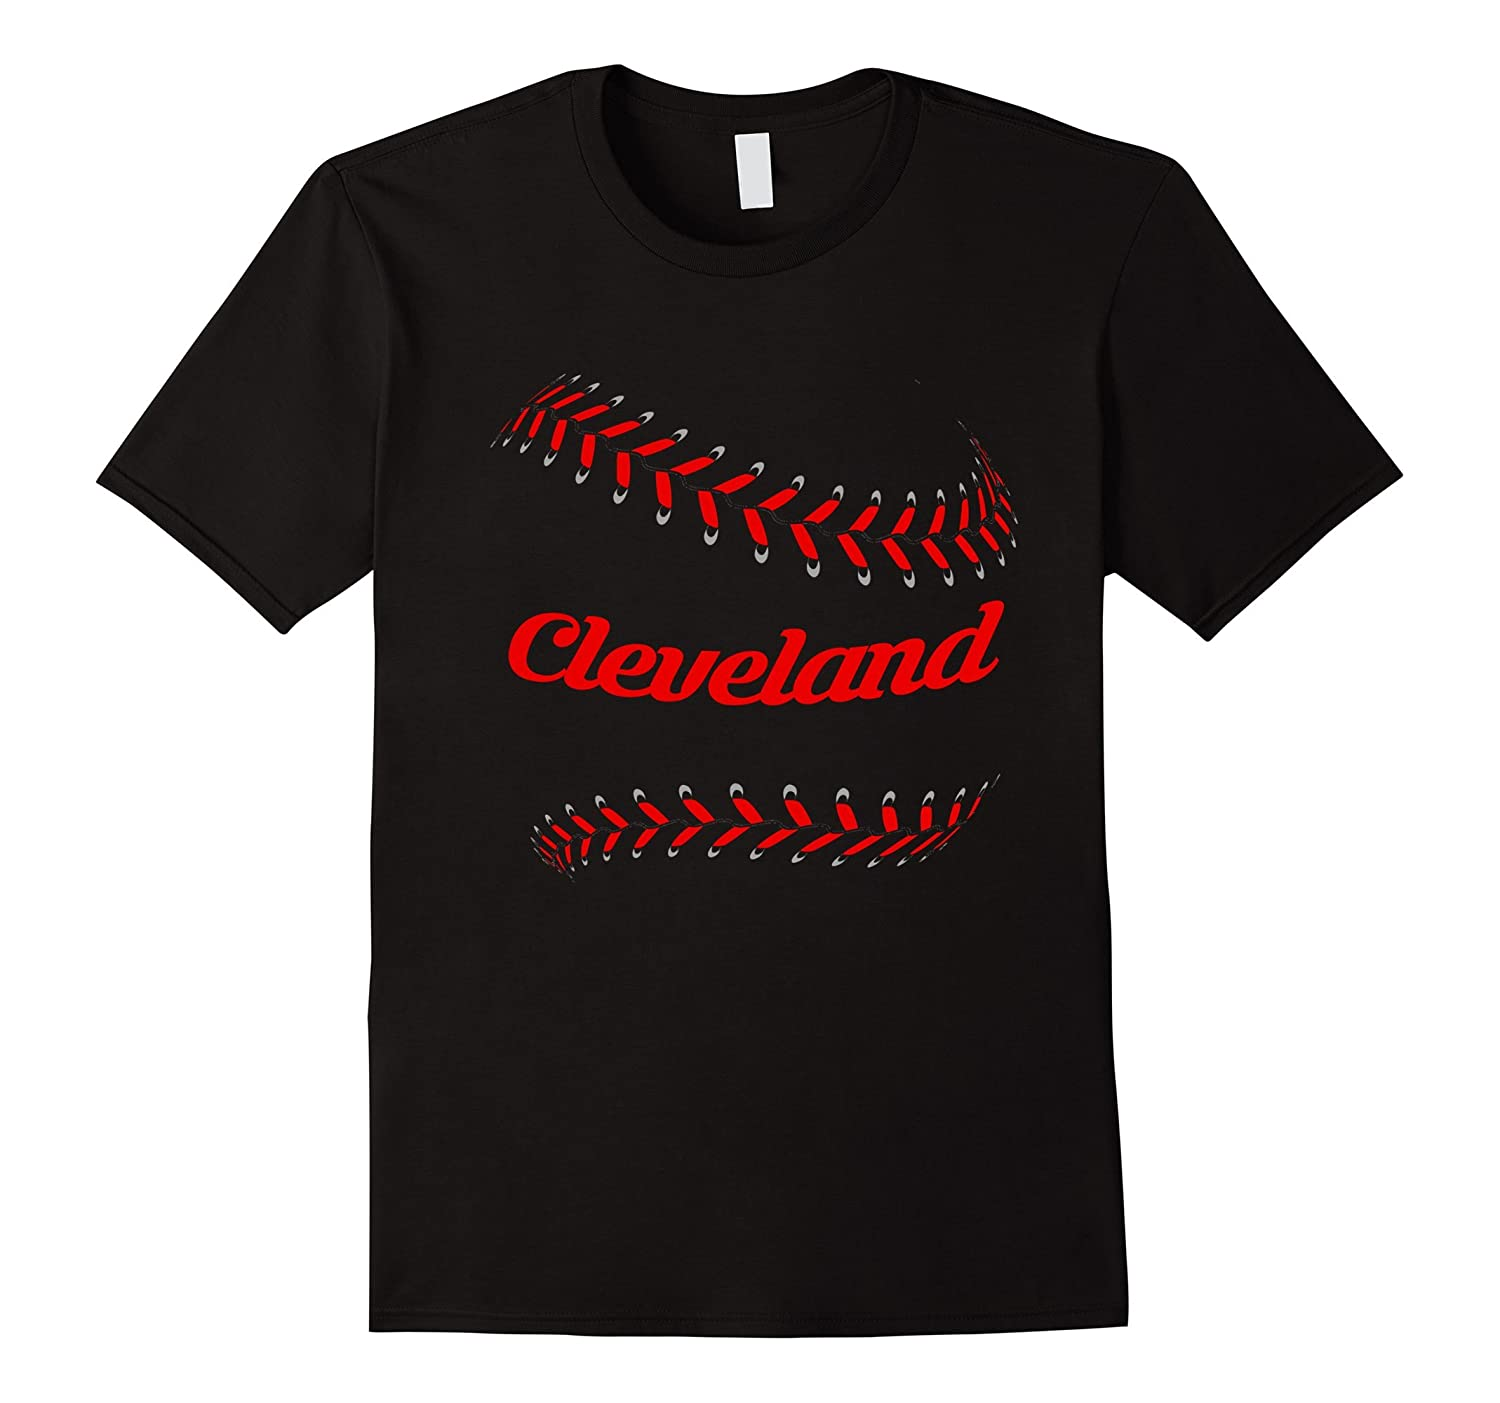 Cleveland Ohio Baseball T-Shirt Gifts Fans Tees-BN